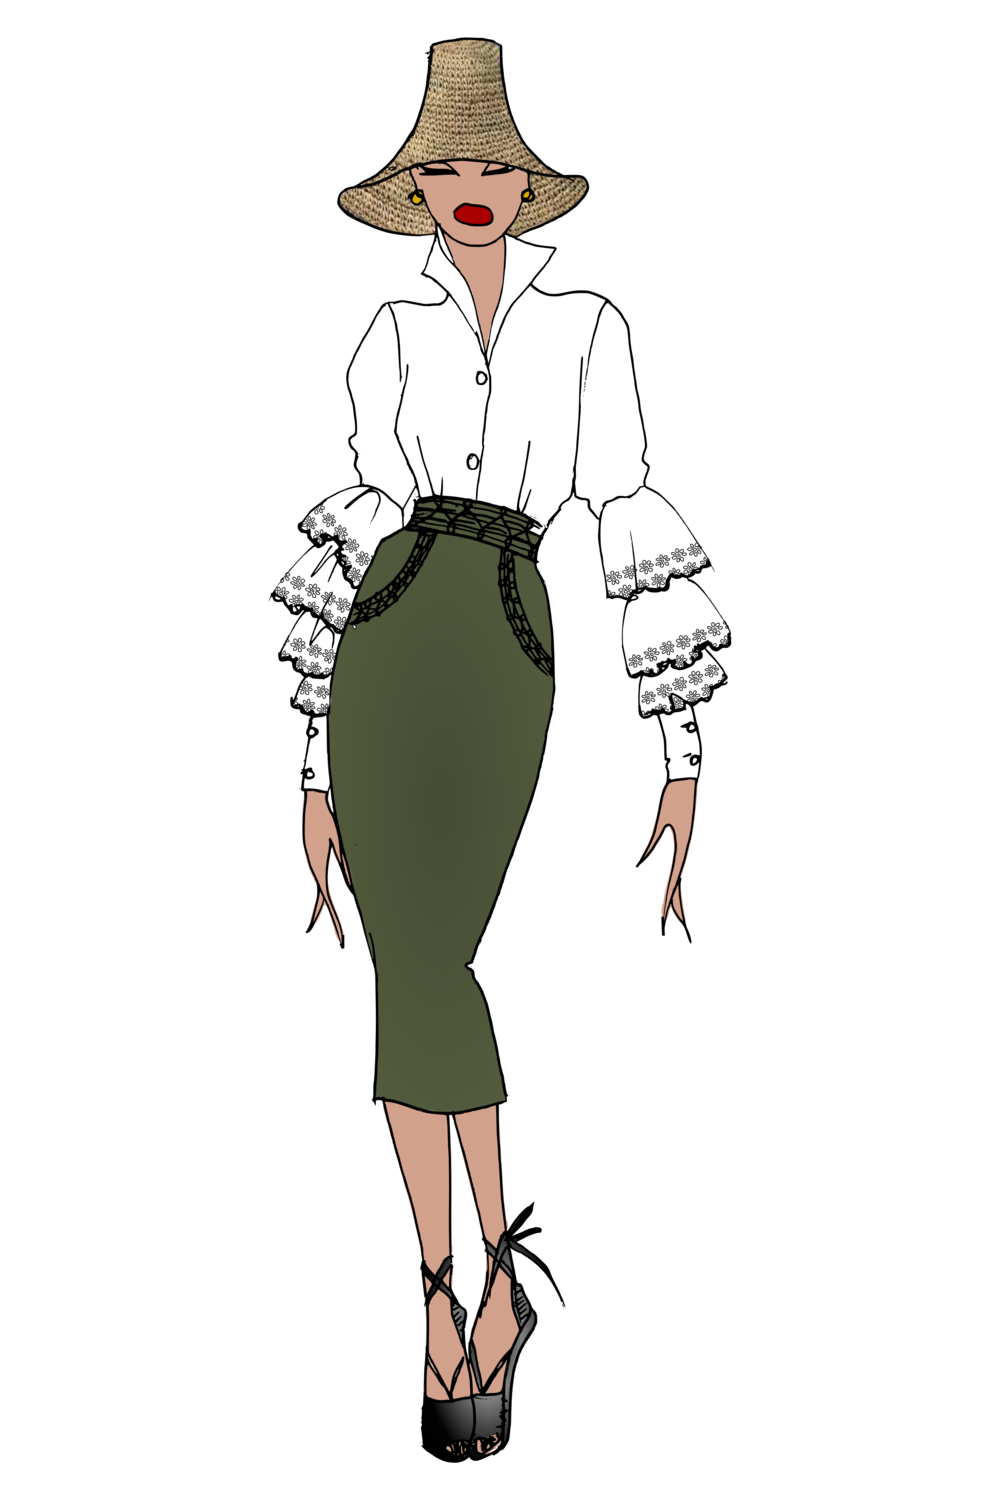 Thedressmaker_sketch_04.png